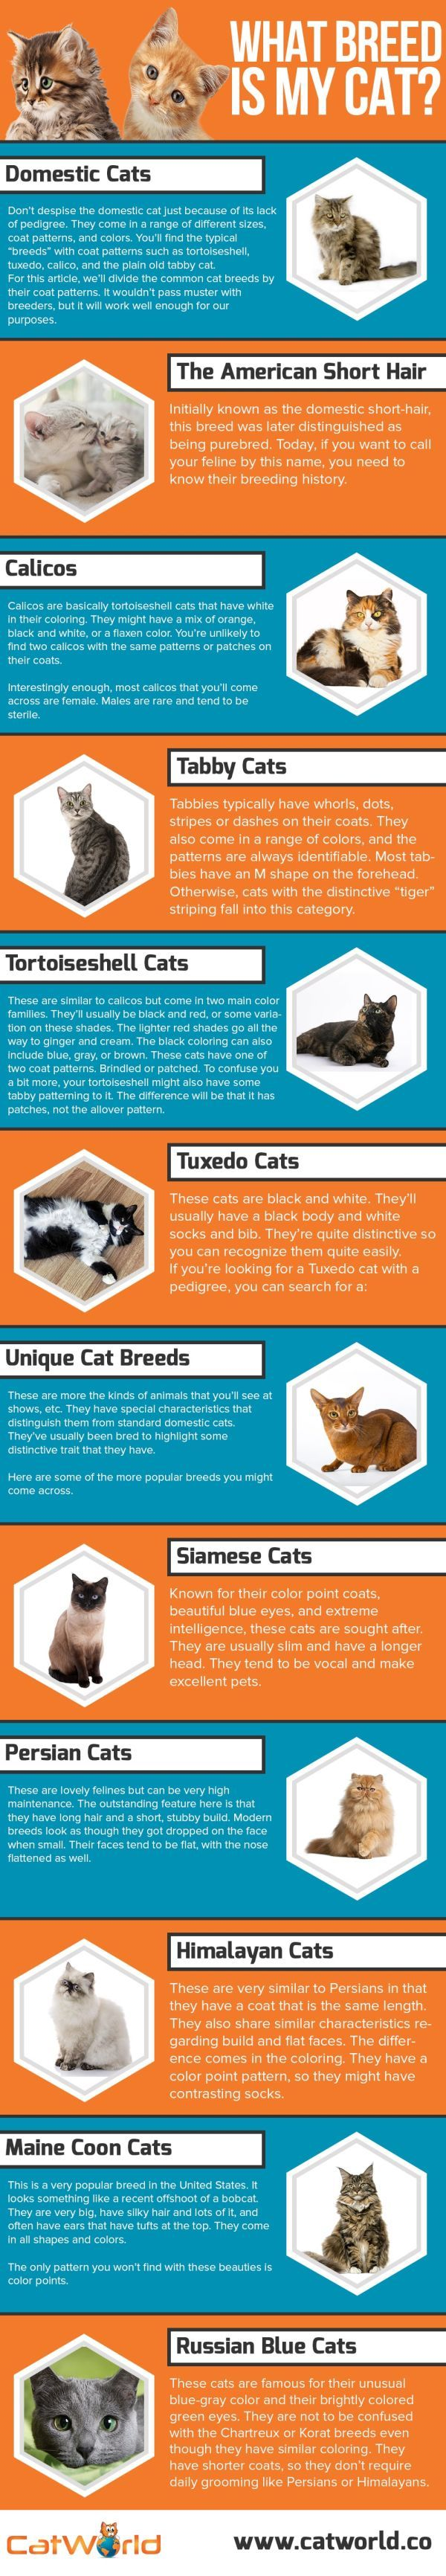 List Of Popular Cat Breeds What Breed Is Your Cat Common Cat Breeds Popular Cat Breeds Cat Breeds Siamese